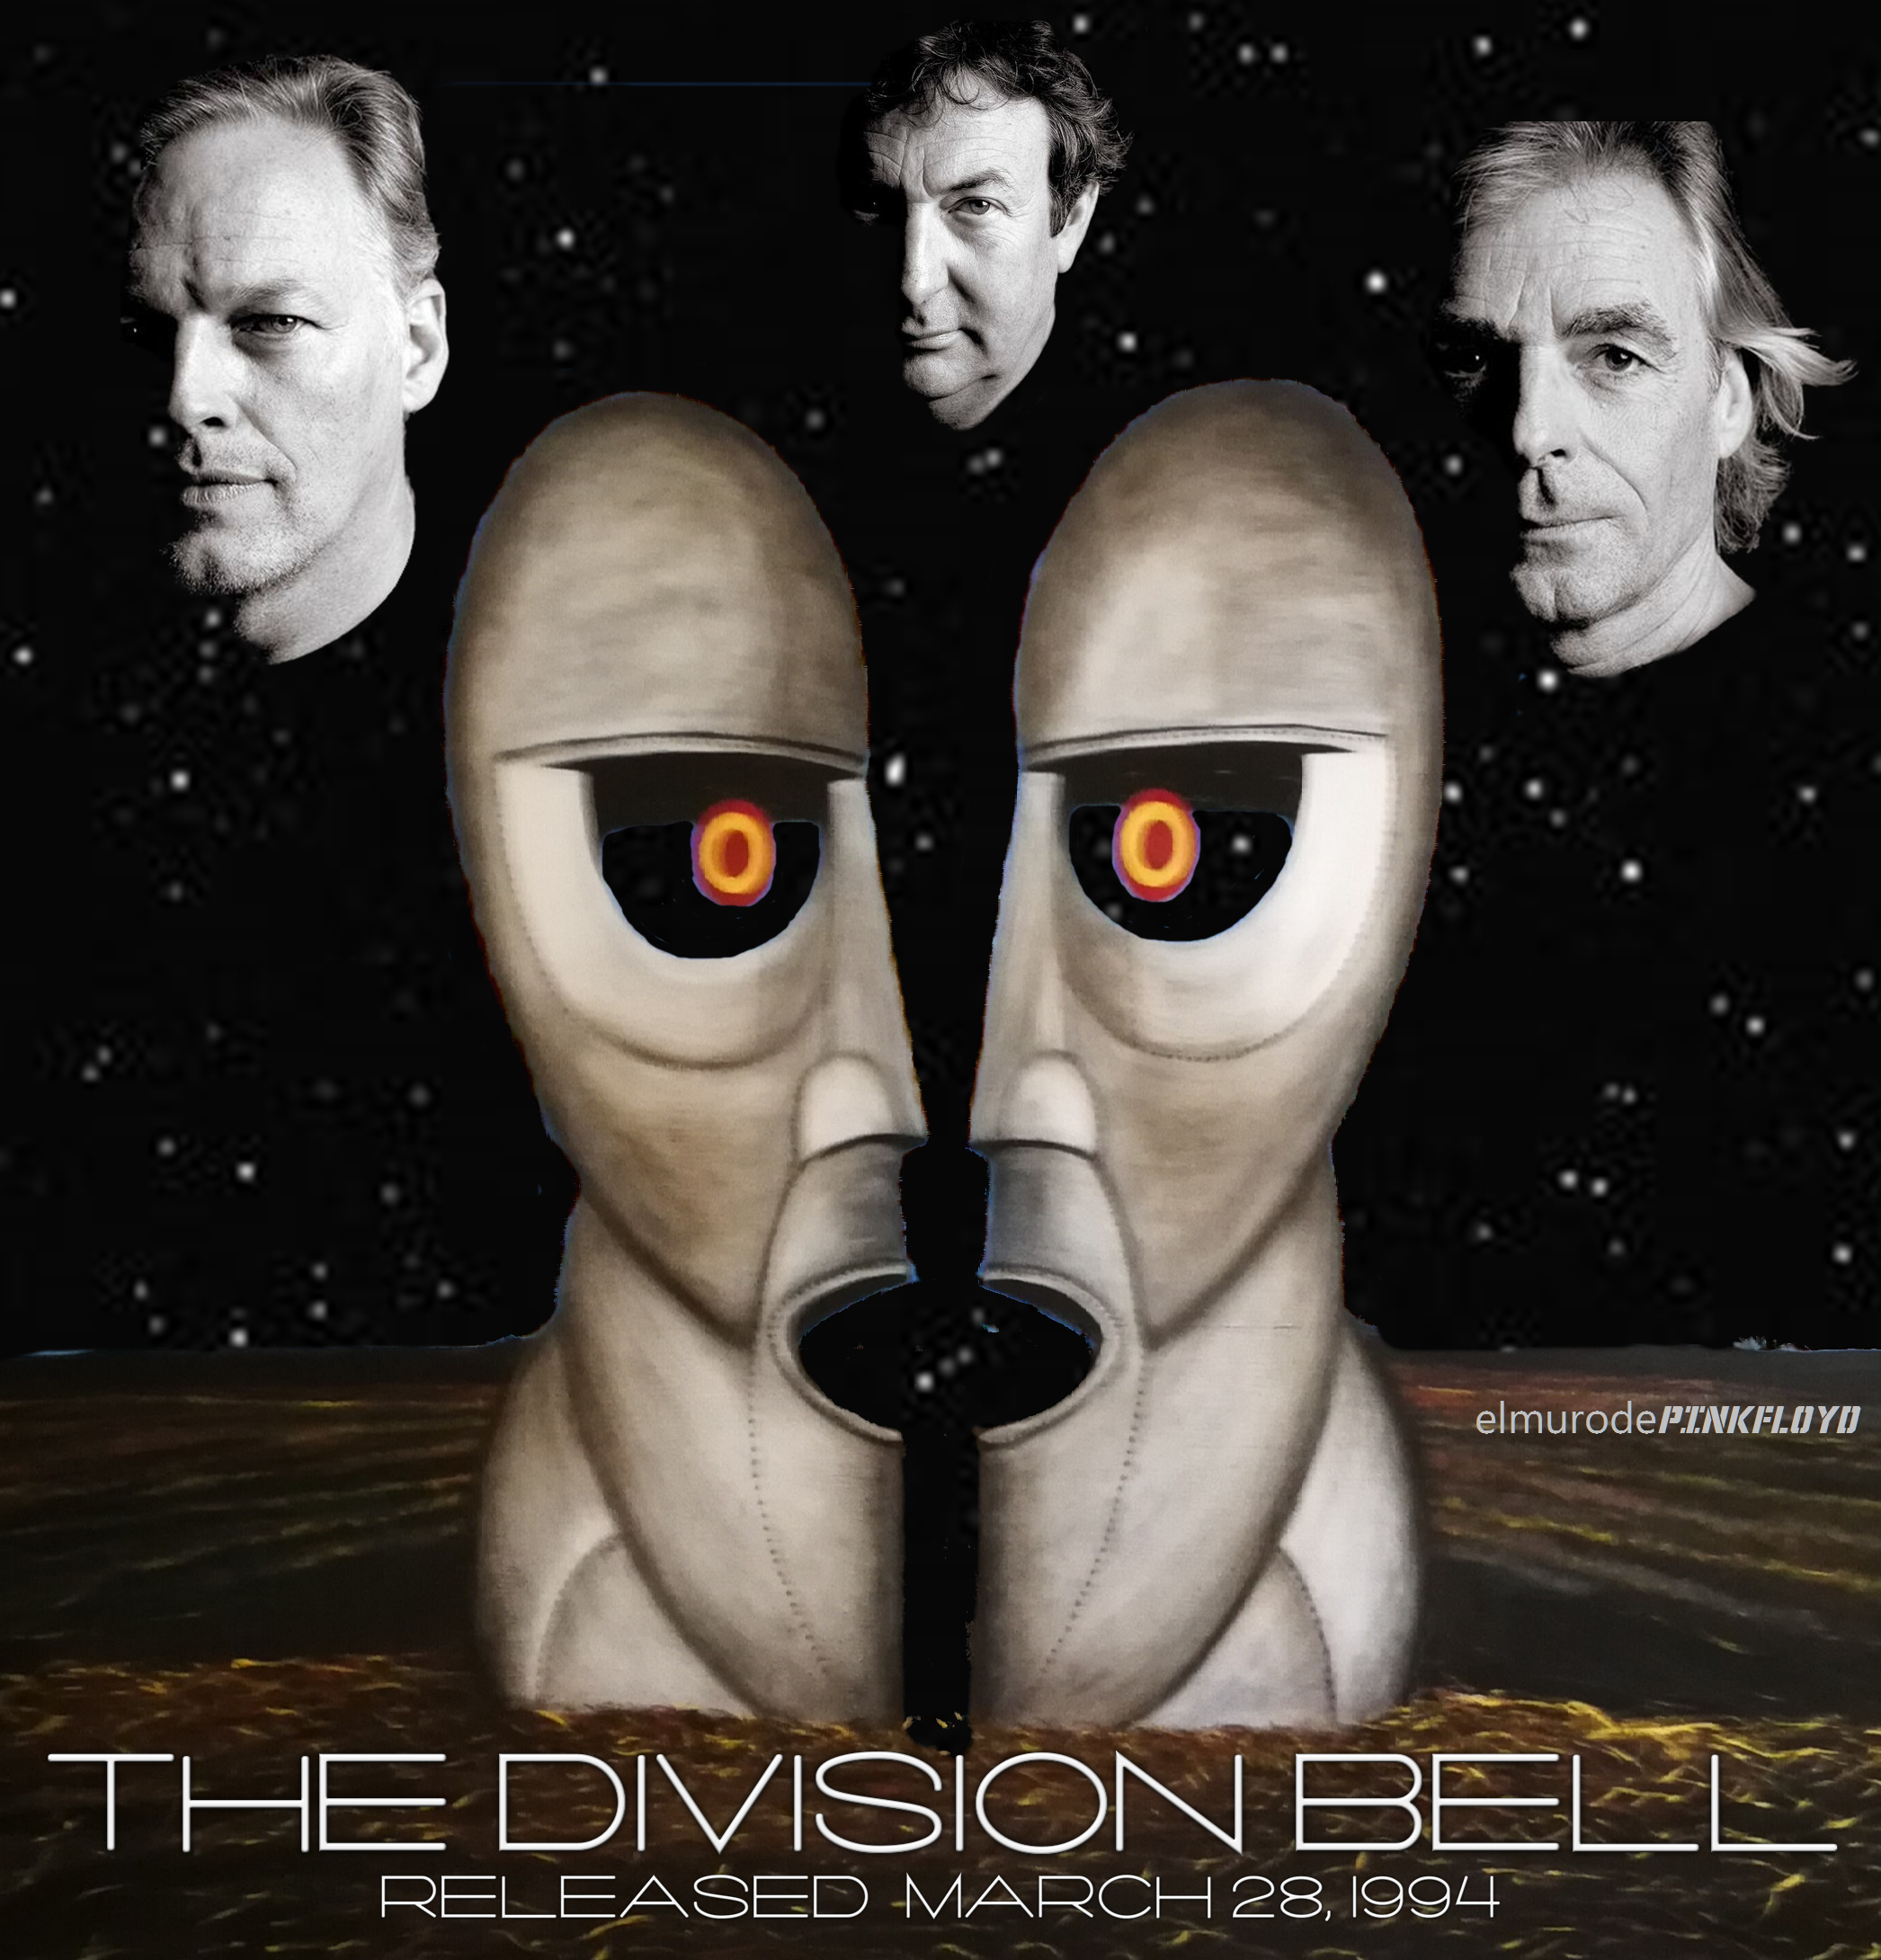 The Division Bell Pink Floyd Musica